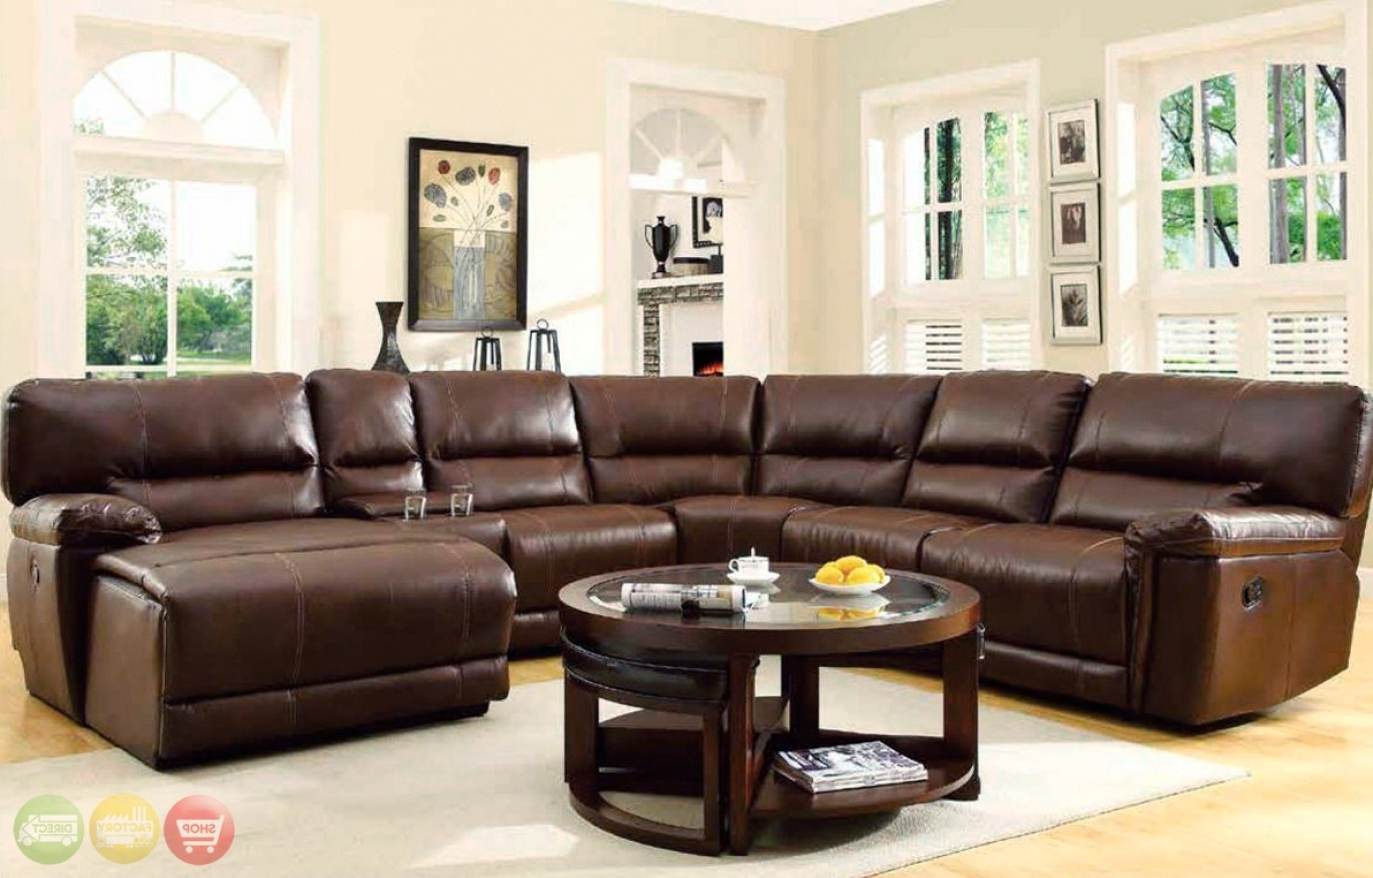 Recliner : Ideal Sectional Sofa With Recliner Leather Hypnotizing In Well Known Sectional Sofas At Bangalore (View 10 of 15)